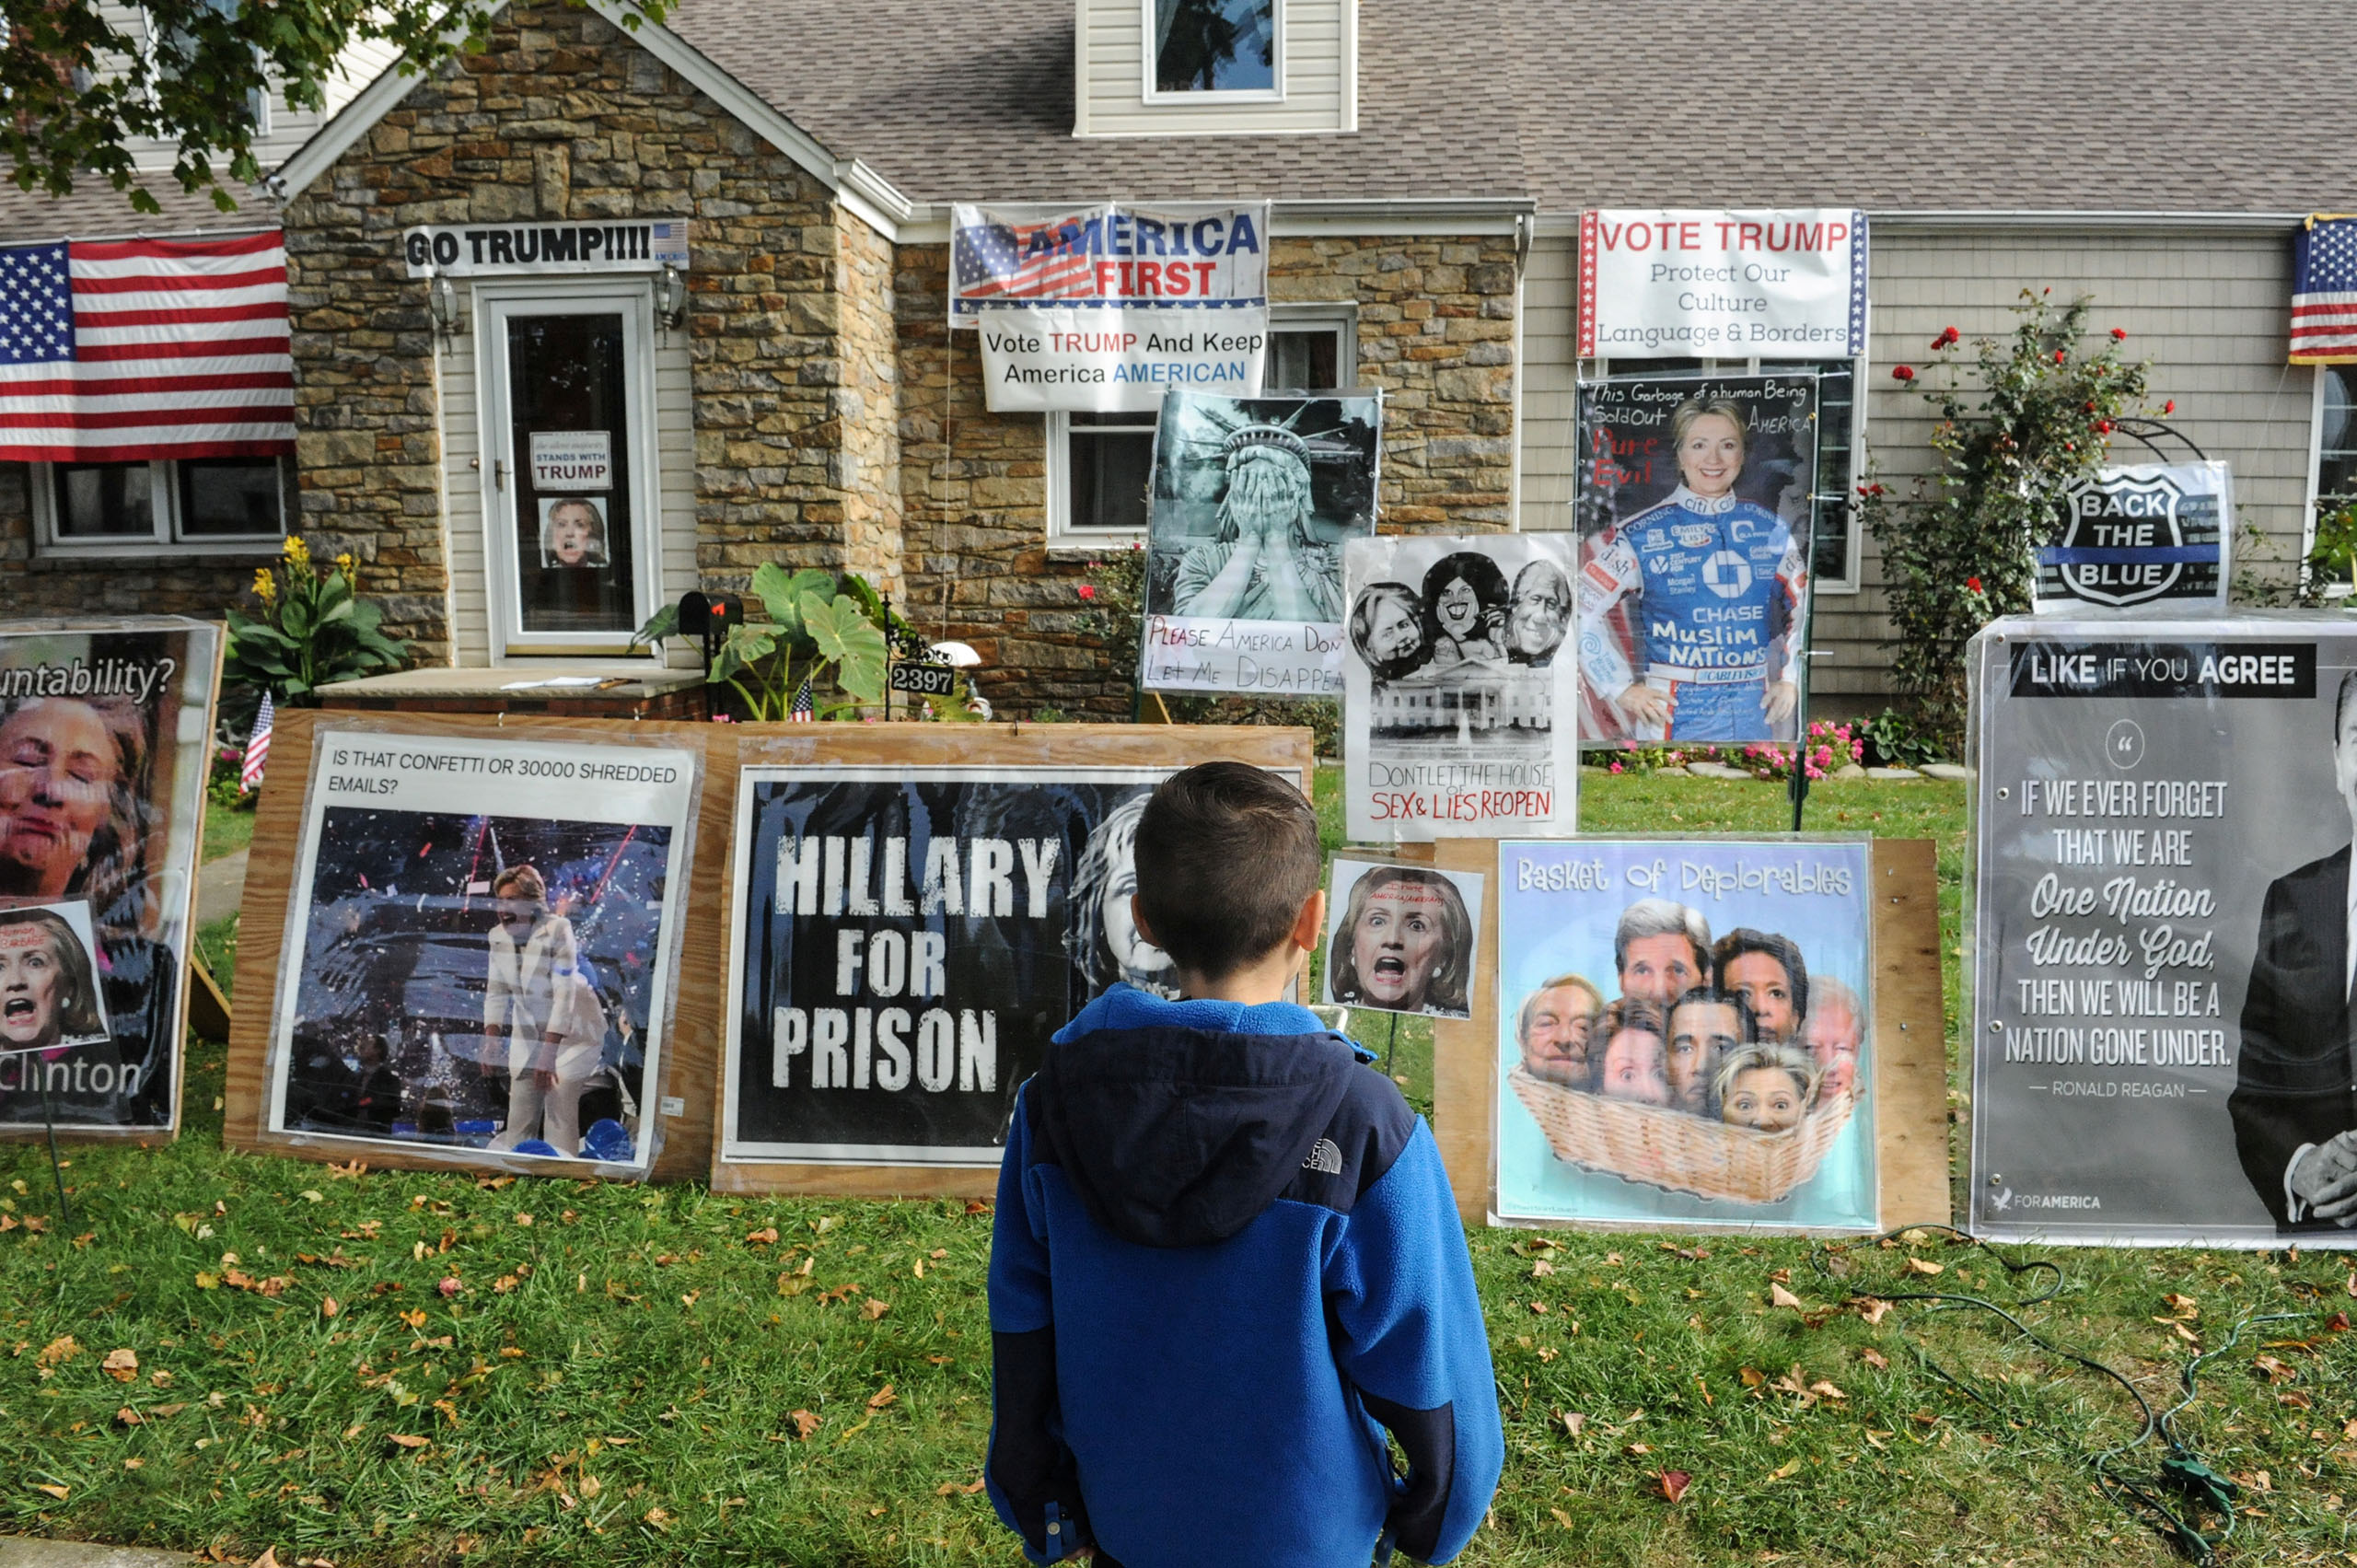 Dominick Vaglica, age 7, looks at a home displaying signs supporting Donald Trump and criticizing Hillary Clinton in Bellmore, NY, on Oct. 29, 2016.